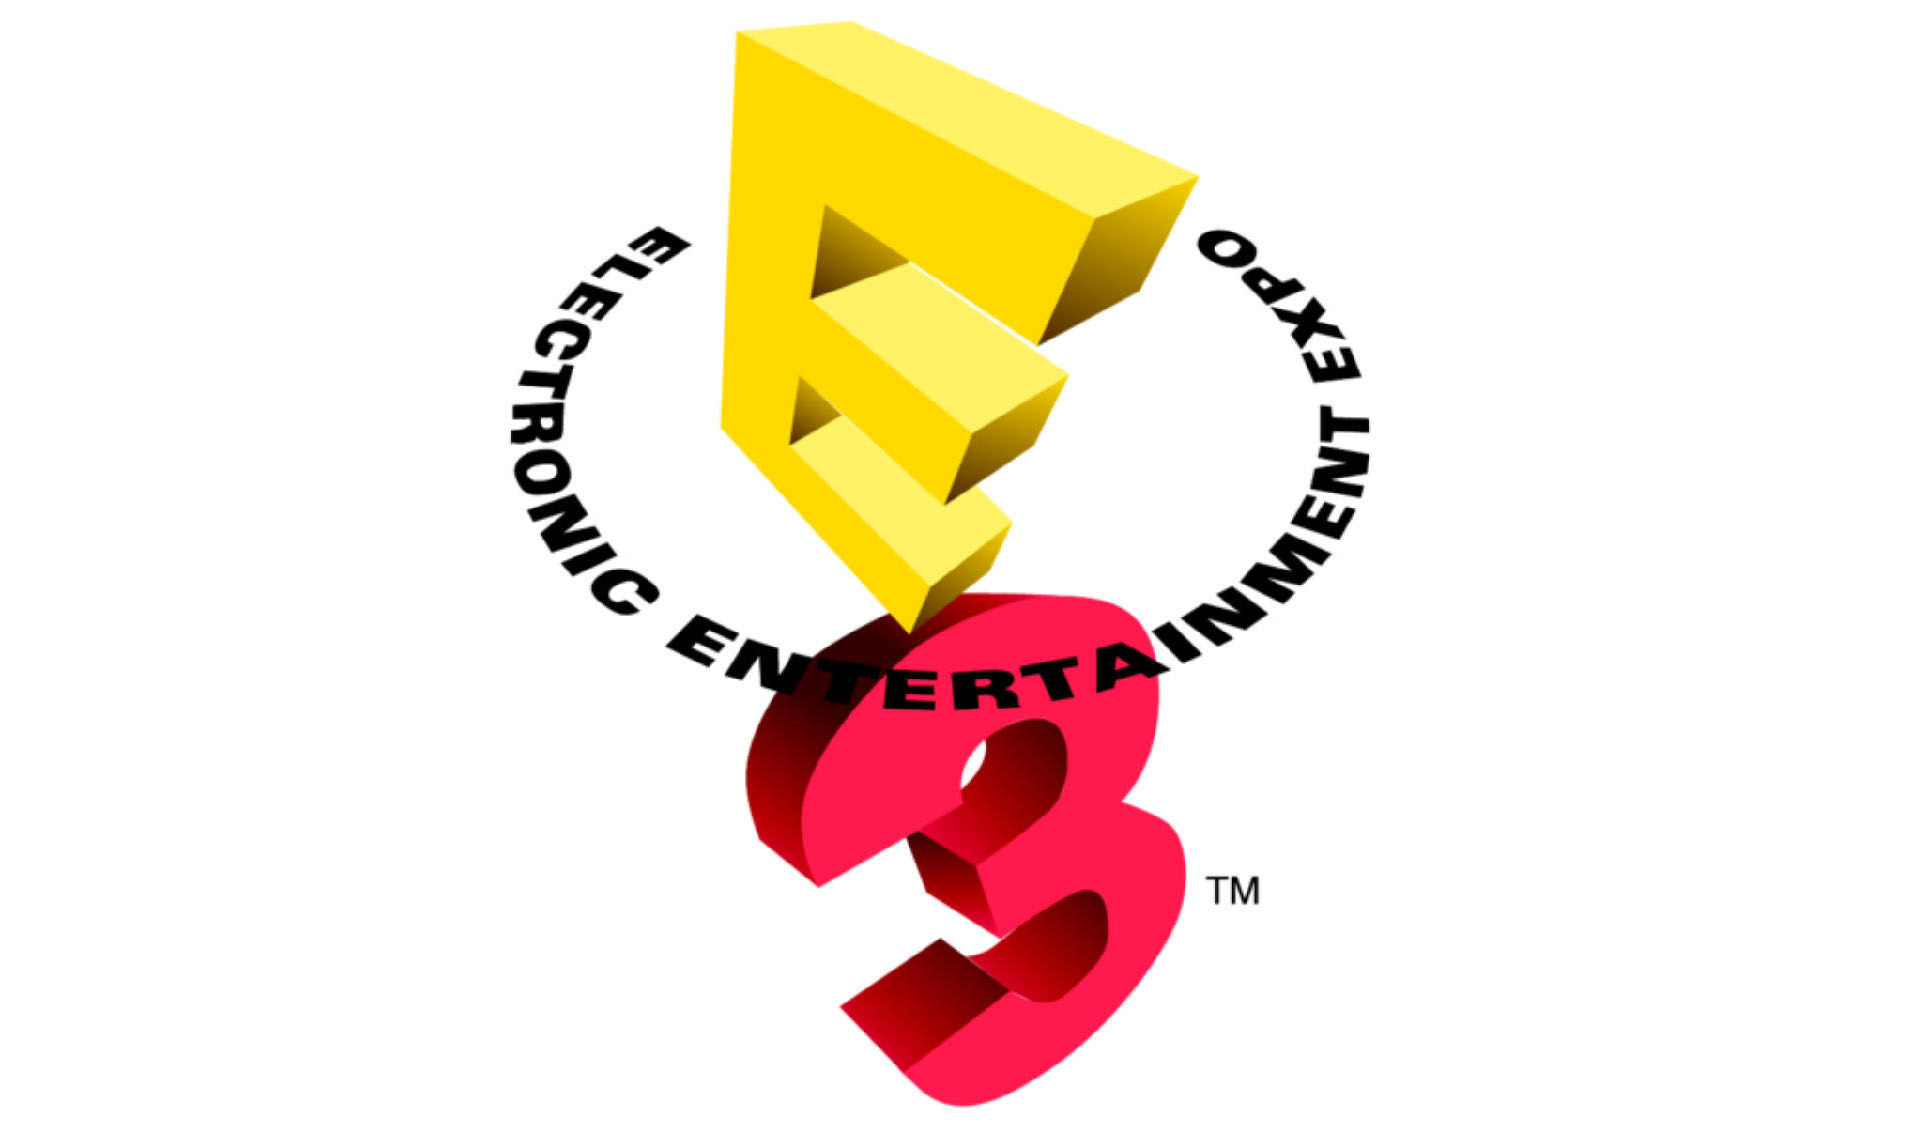 Goodbye to E3 2014 (E3 2015 dated)